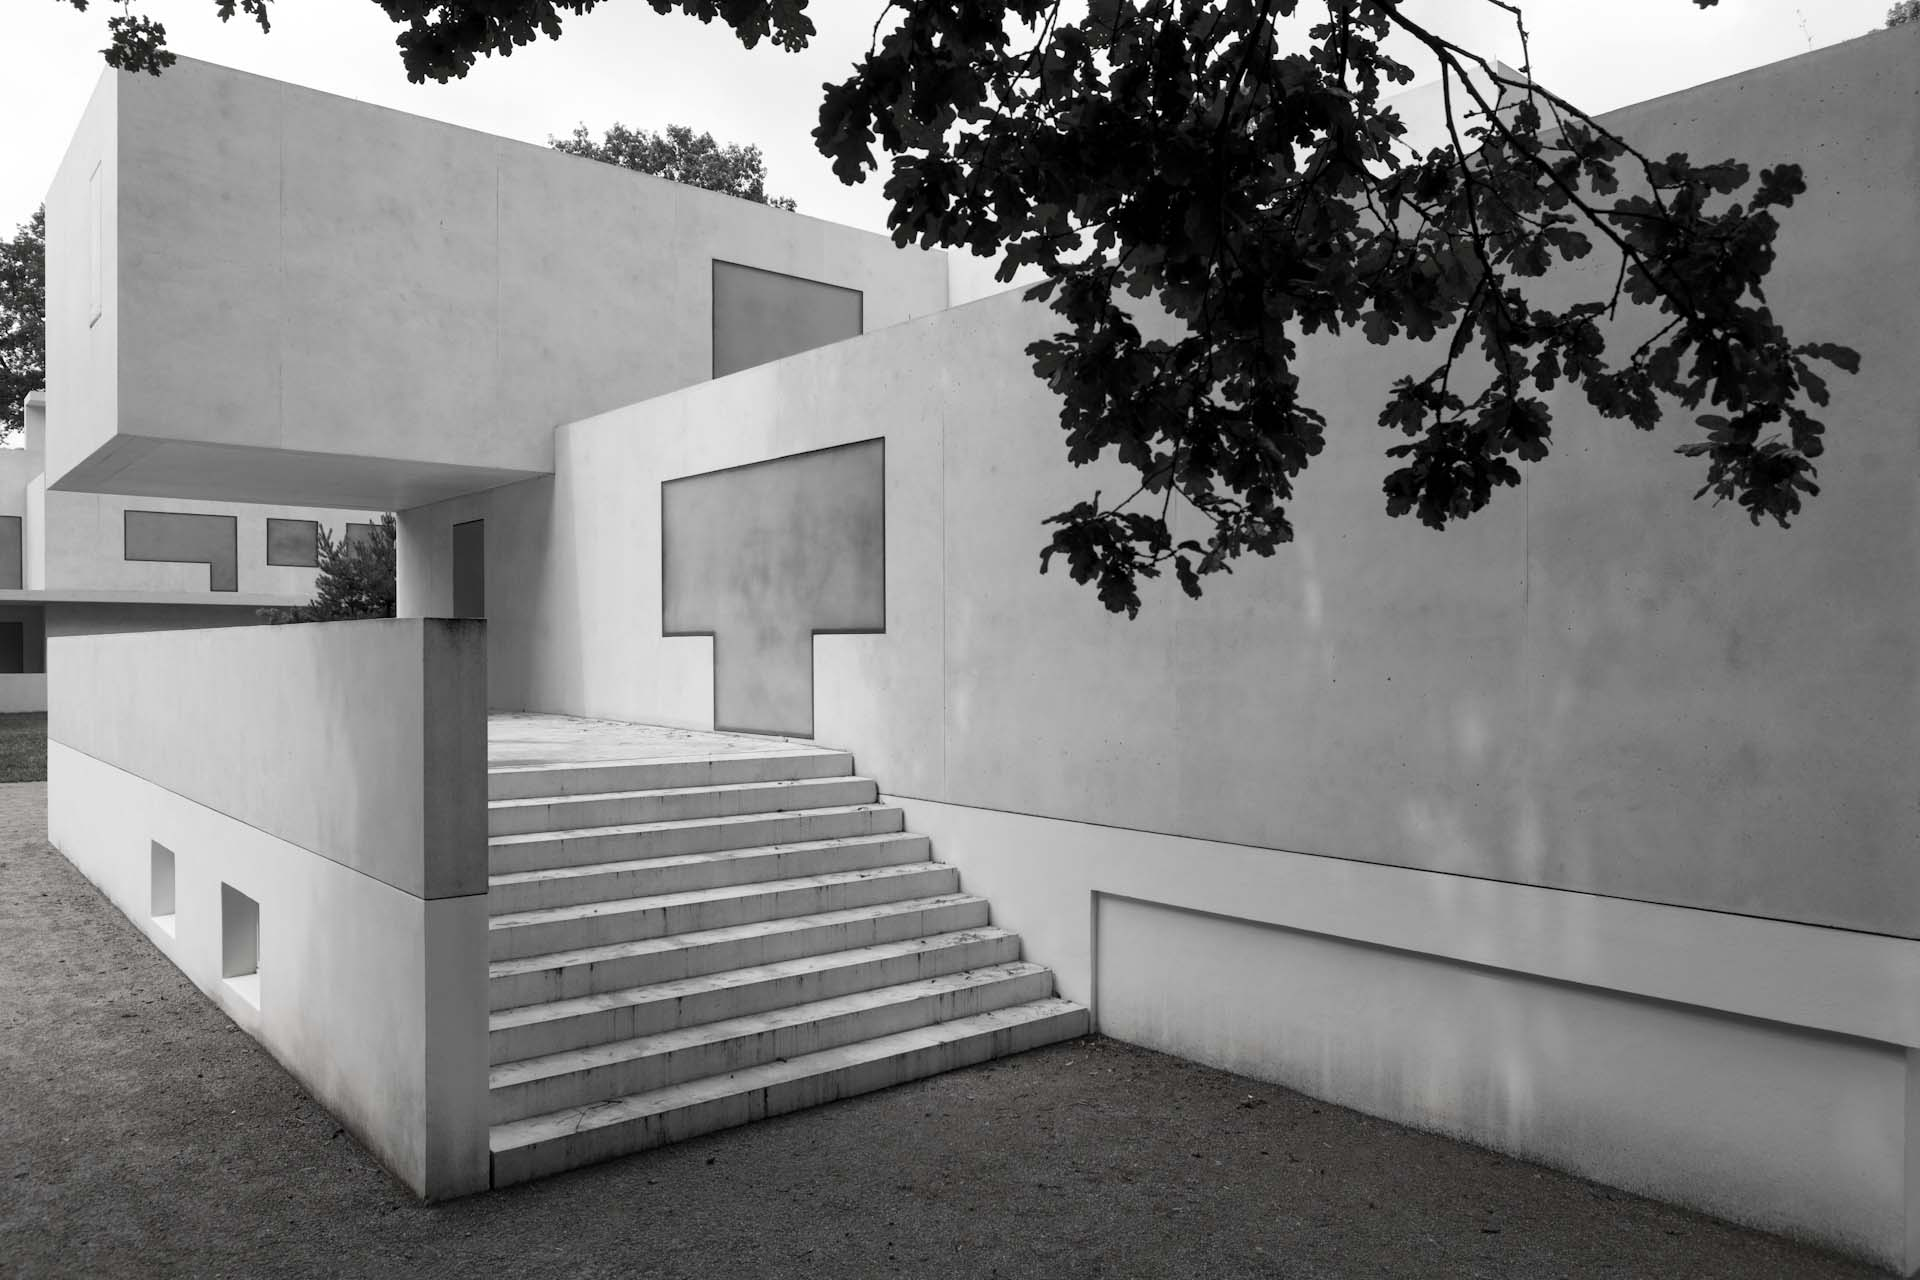 The new Master House Gropius, by Bruno Fioretti Marquez Architects 2010-2014.